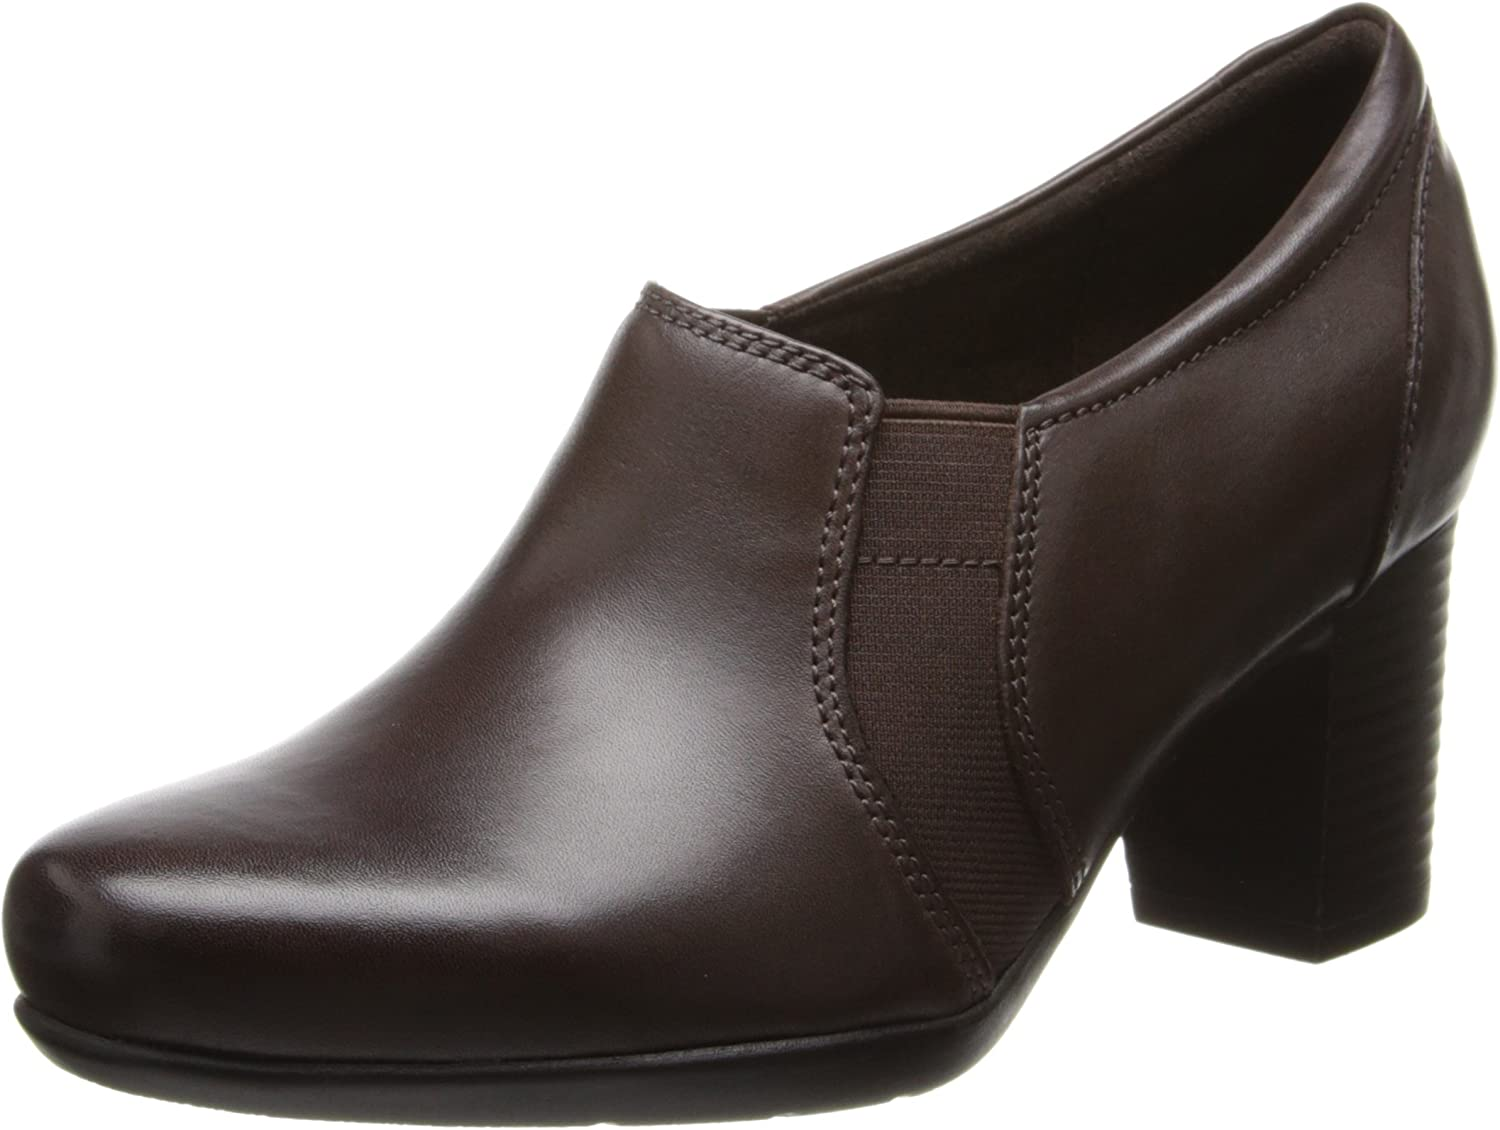 Clarks Women's Promise Holly Dress Pump